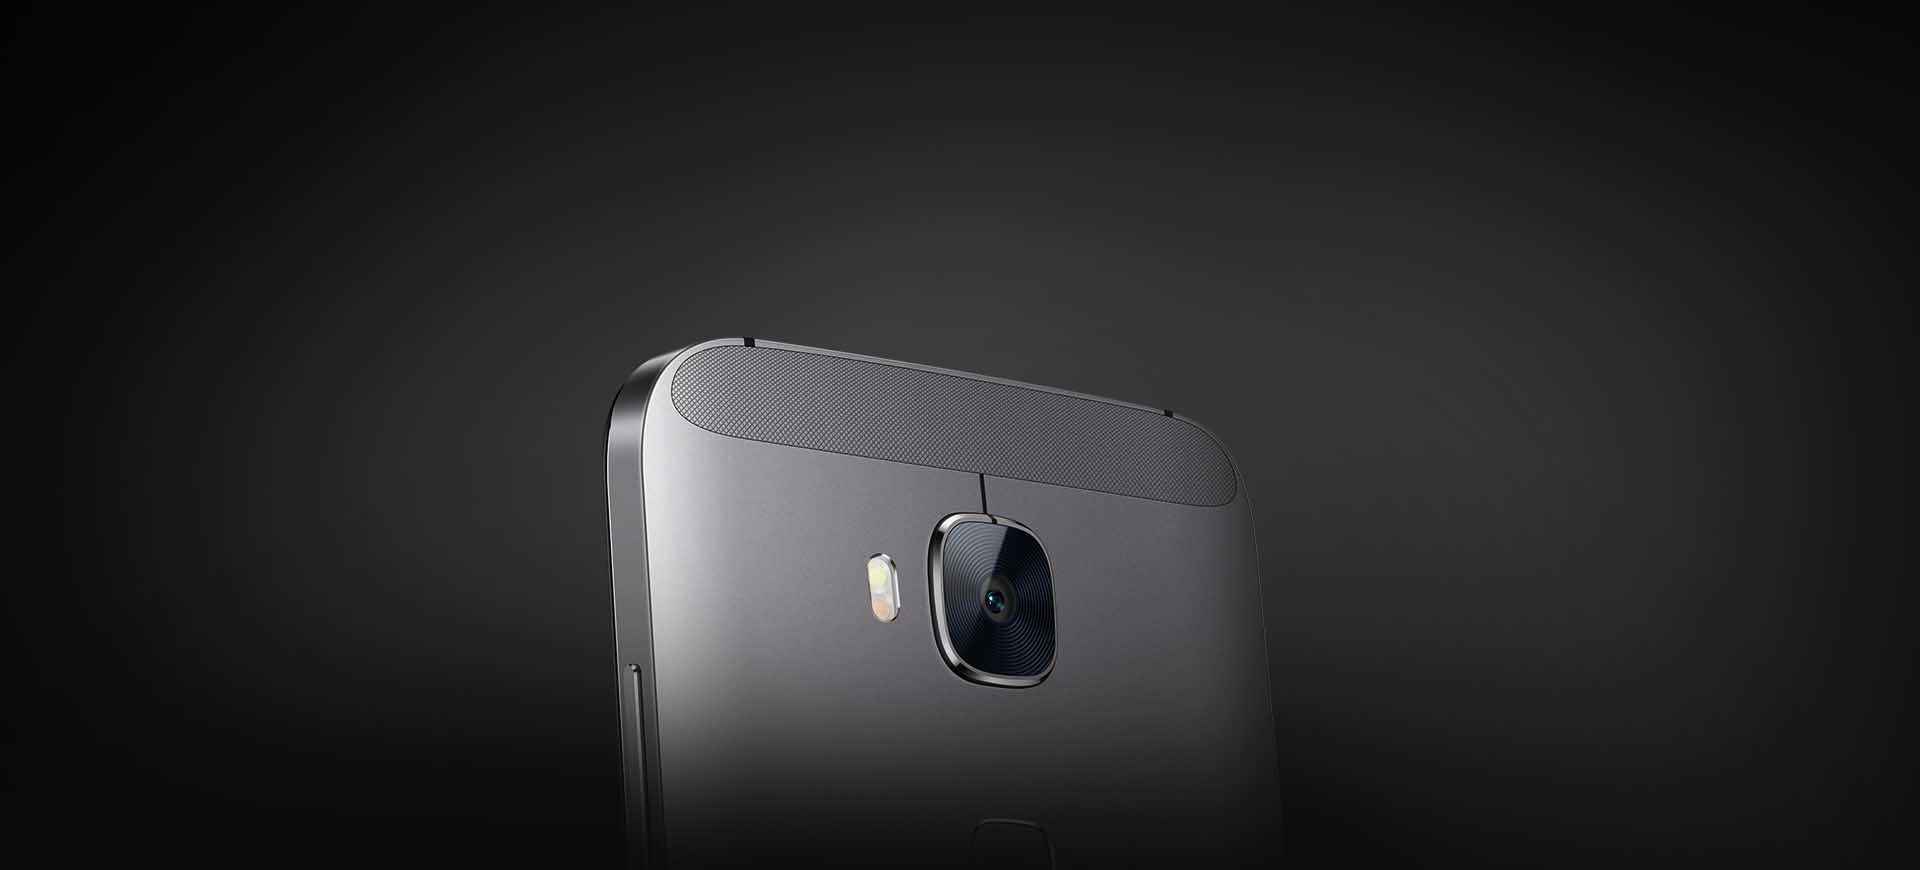 Huawei G8 Dual Sim 4G Gold Picture Perfect